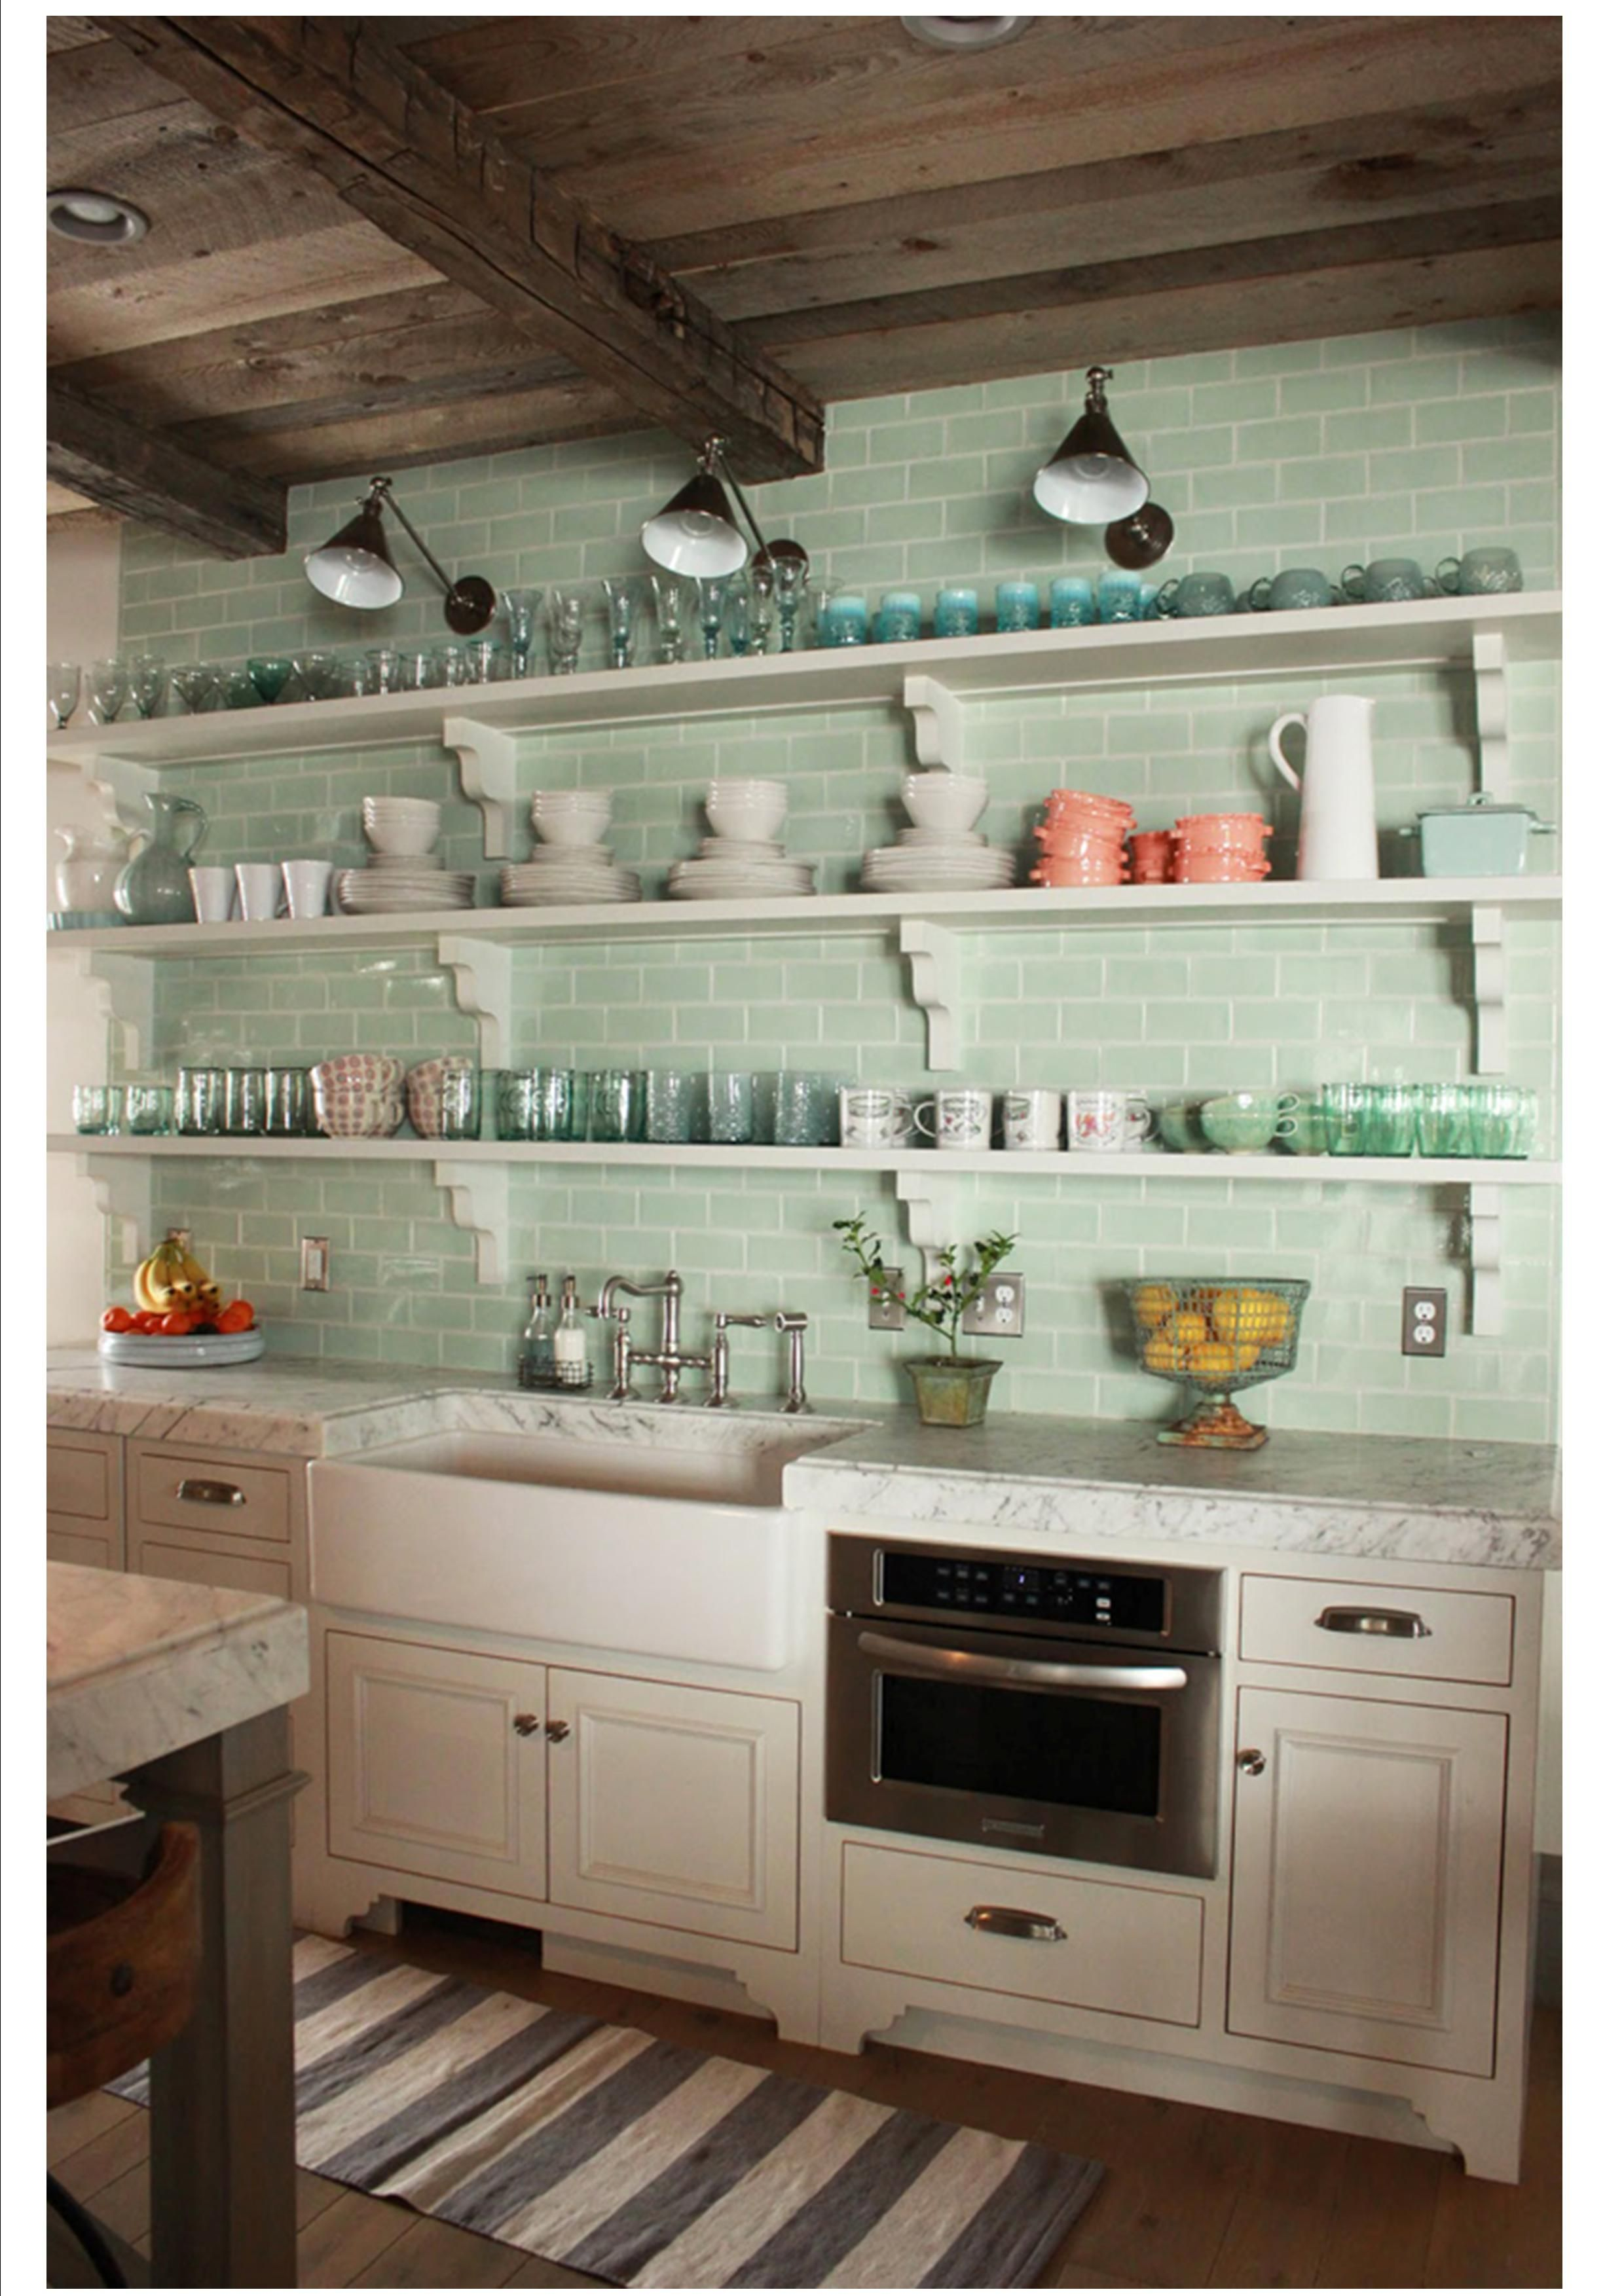 Sea glass green subway tile backsplash and open shelves so pretty sea glass green subway tile backsplash and open shelves so pretty dailygadgetfo Images